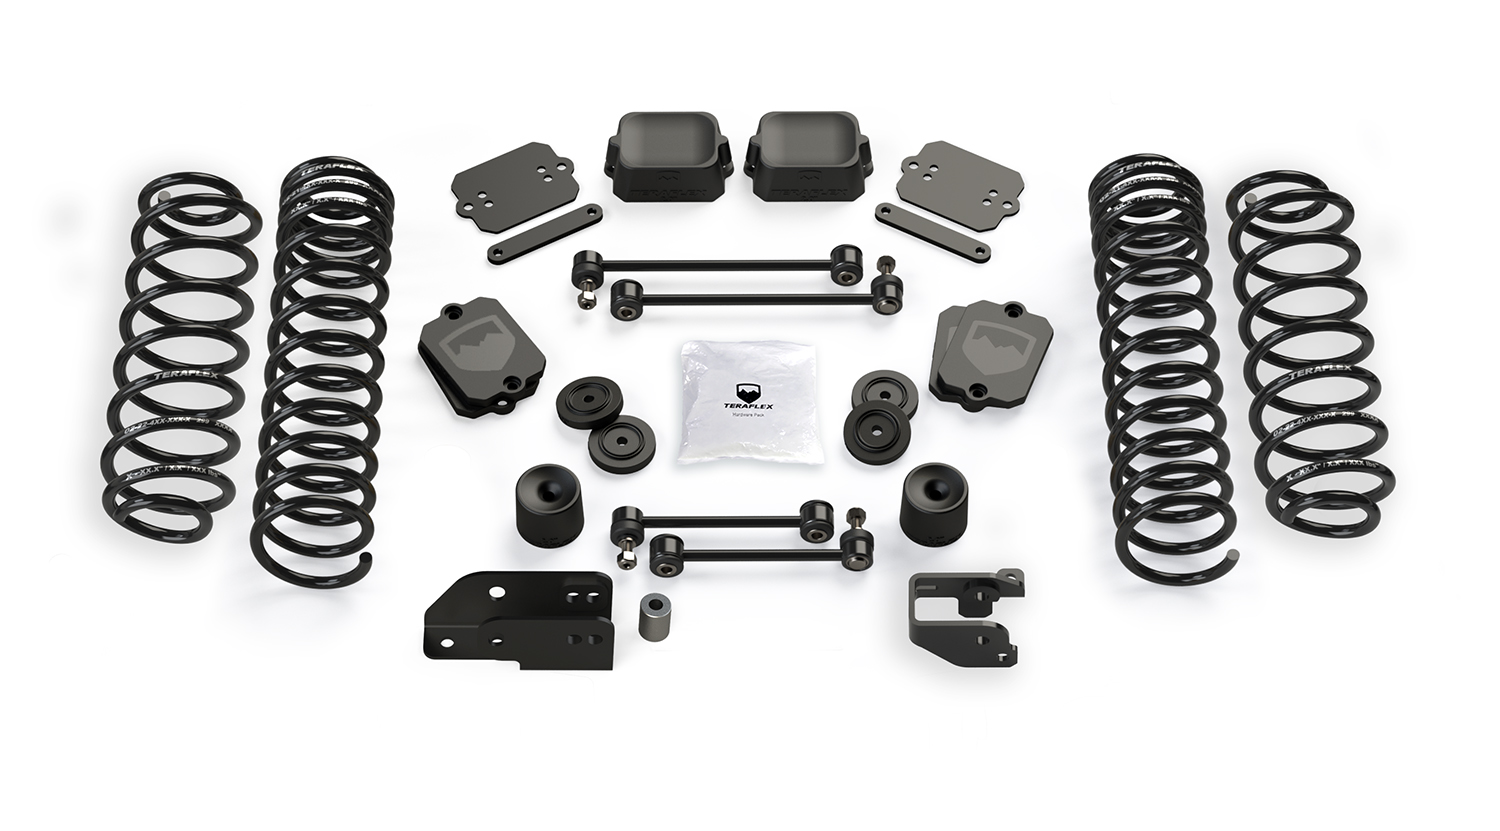 Teraflex 3.5in Coil Spring Base Lift Kit - No Shocks - JL 4Dr